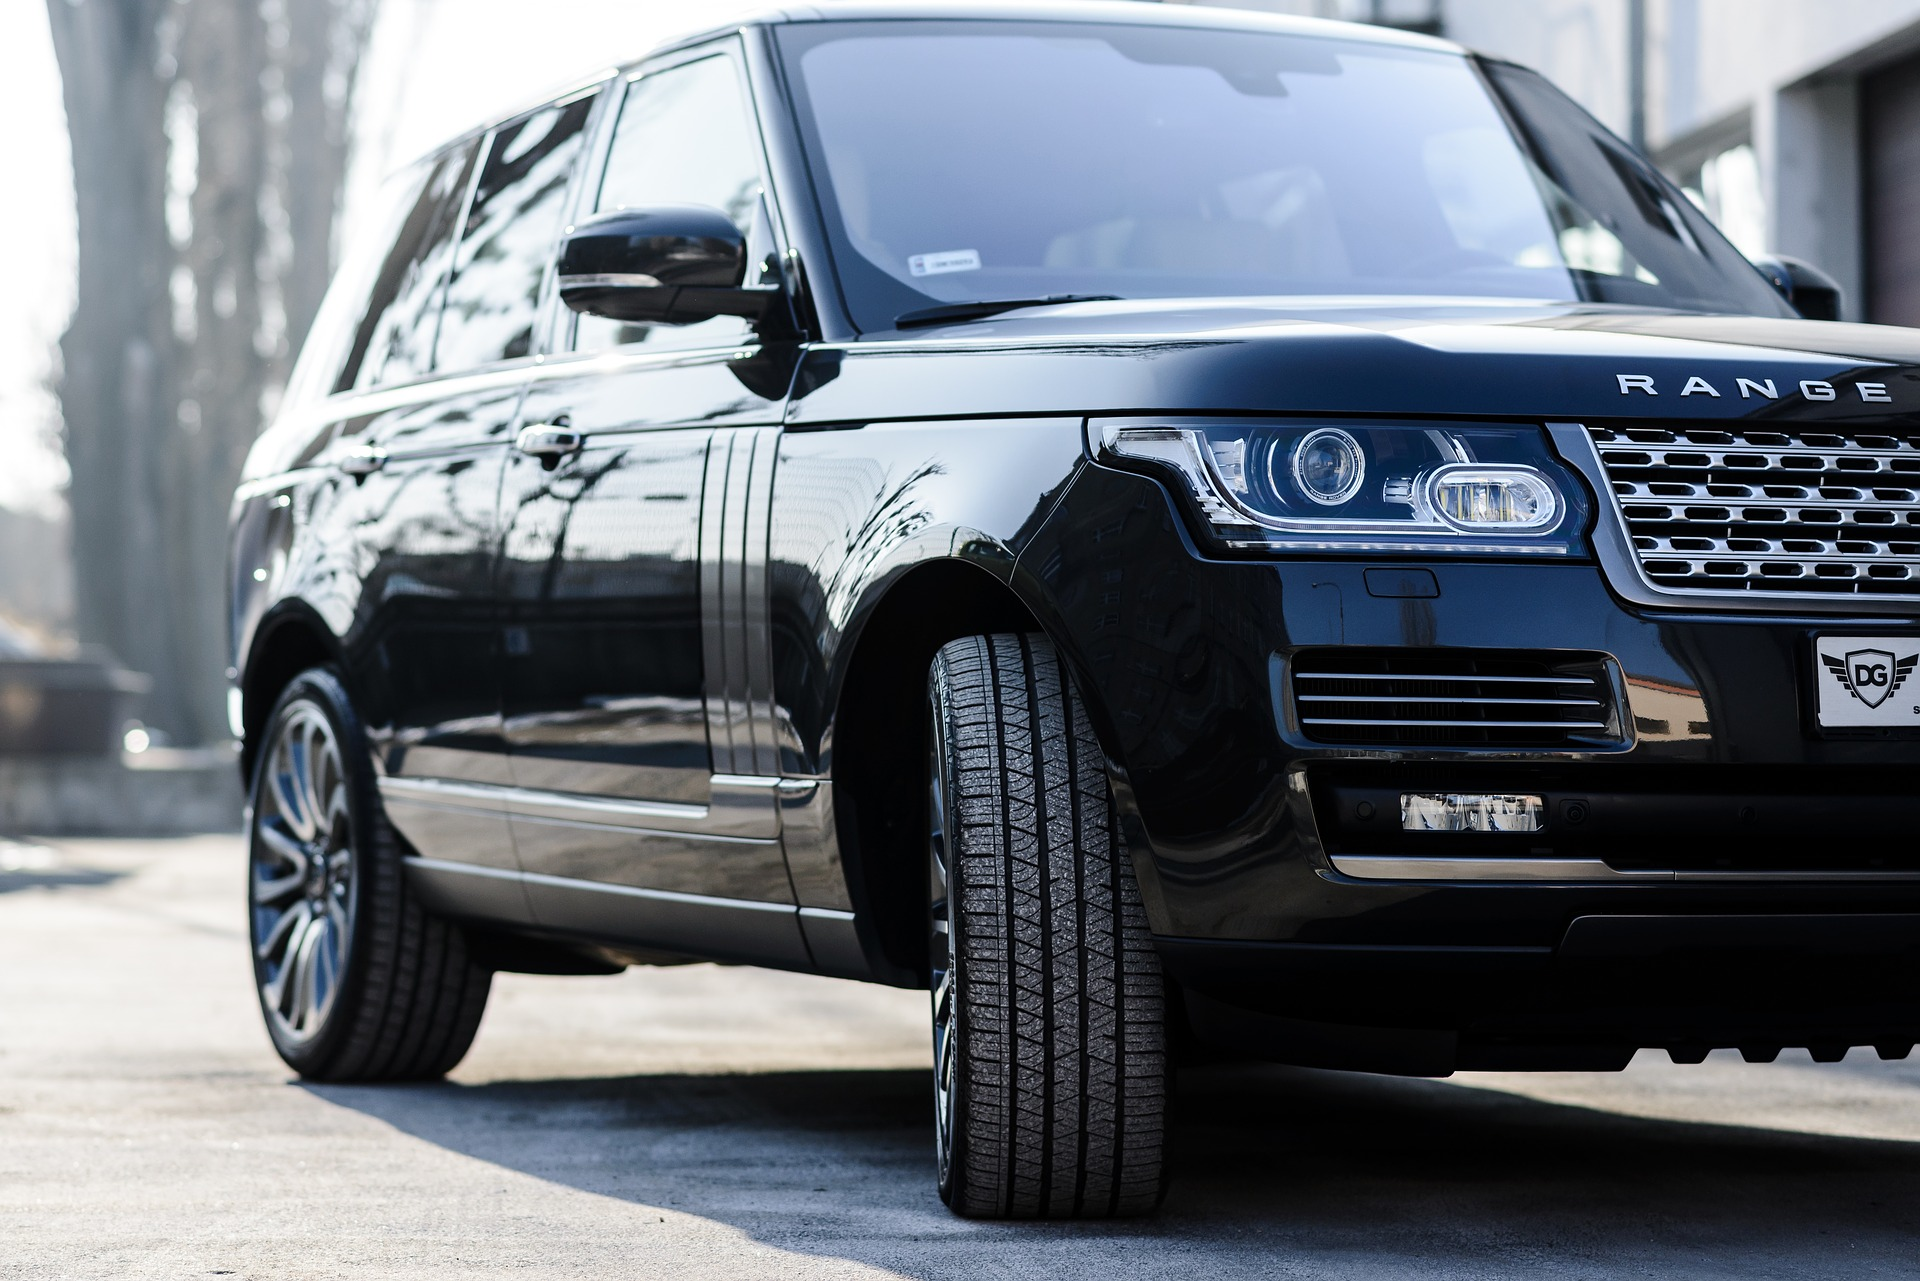 Payday loans and cash advances range rover